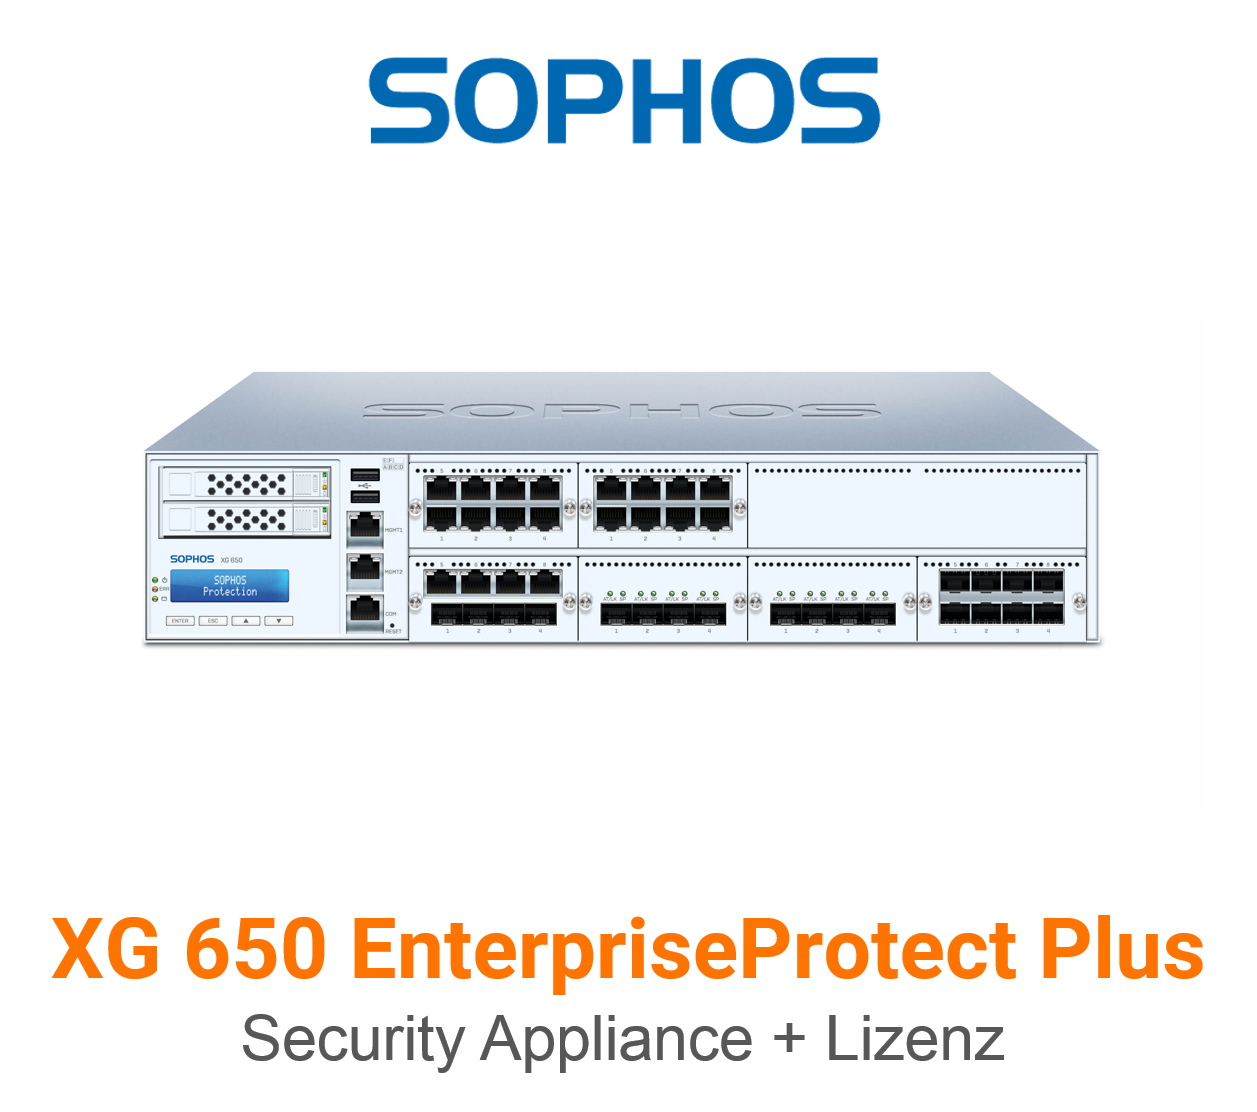 Sophos XG 650 EnterpriseProtect Plus Bundle (Hardware + Lizenz)